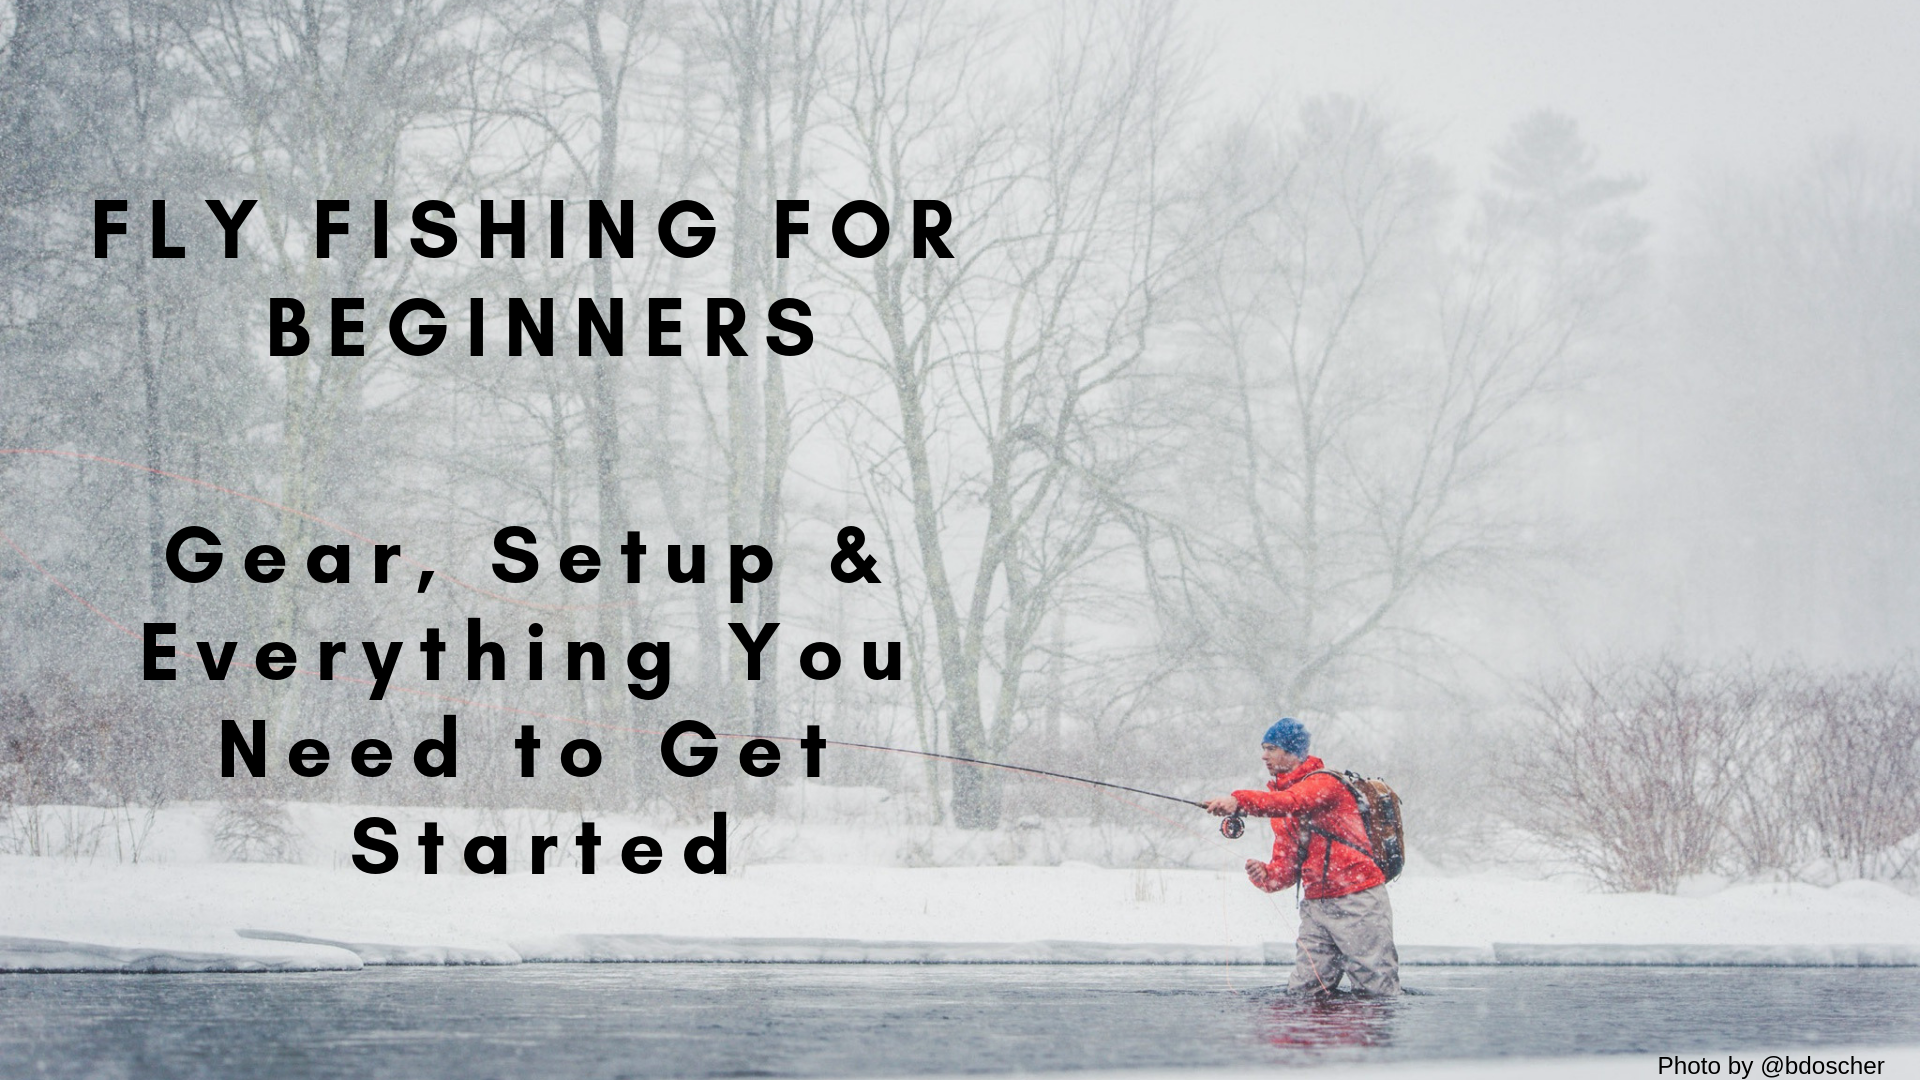 Fly Fishing for Beginners